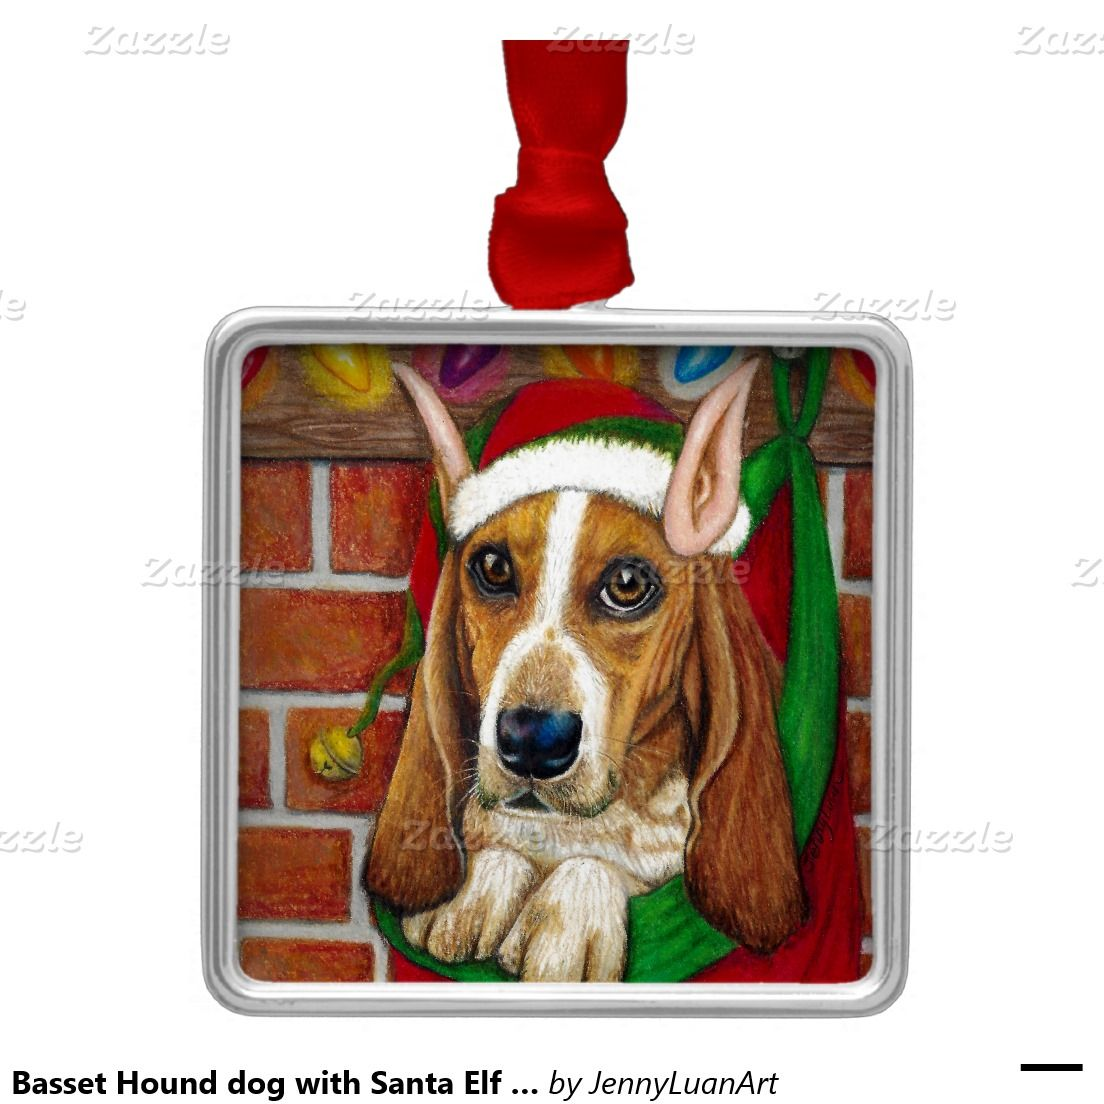 Basset Hound dog with Santa Elf Ear in Stocking Square Metal Christmas Ornament